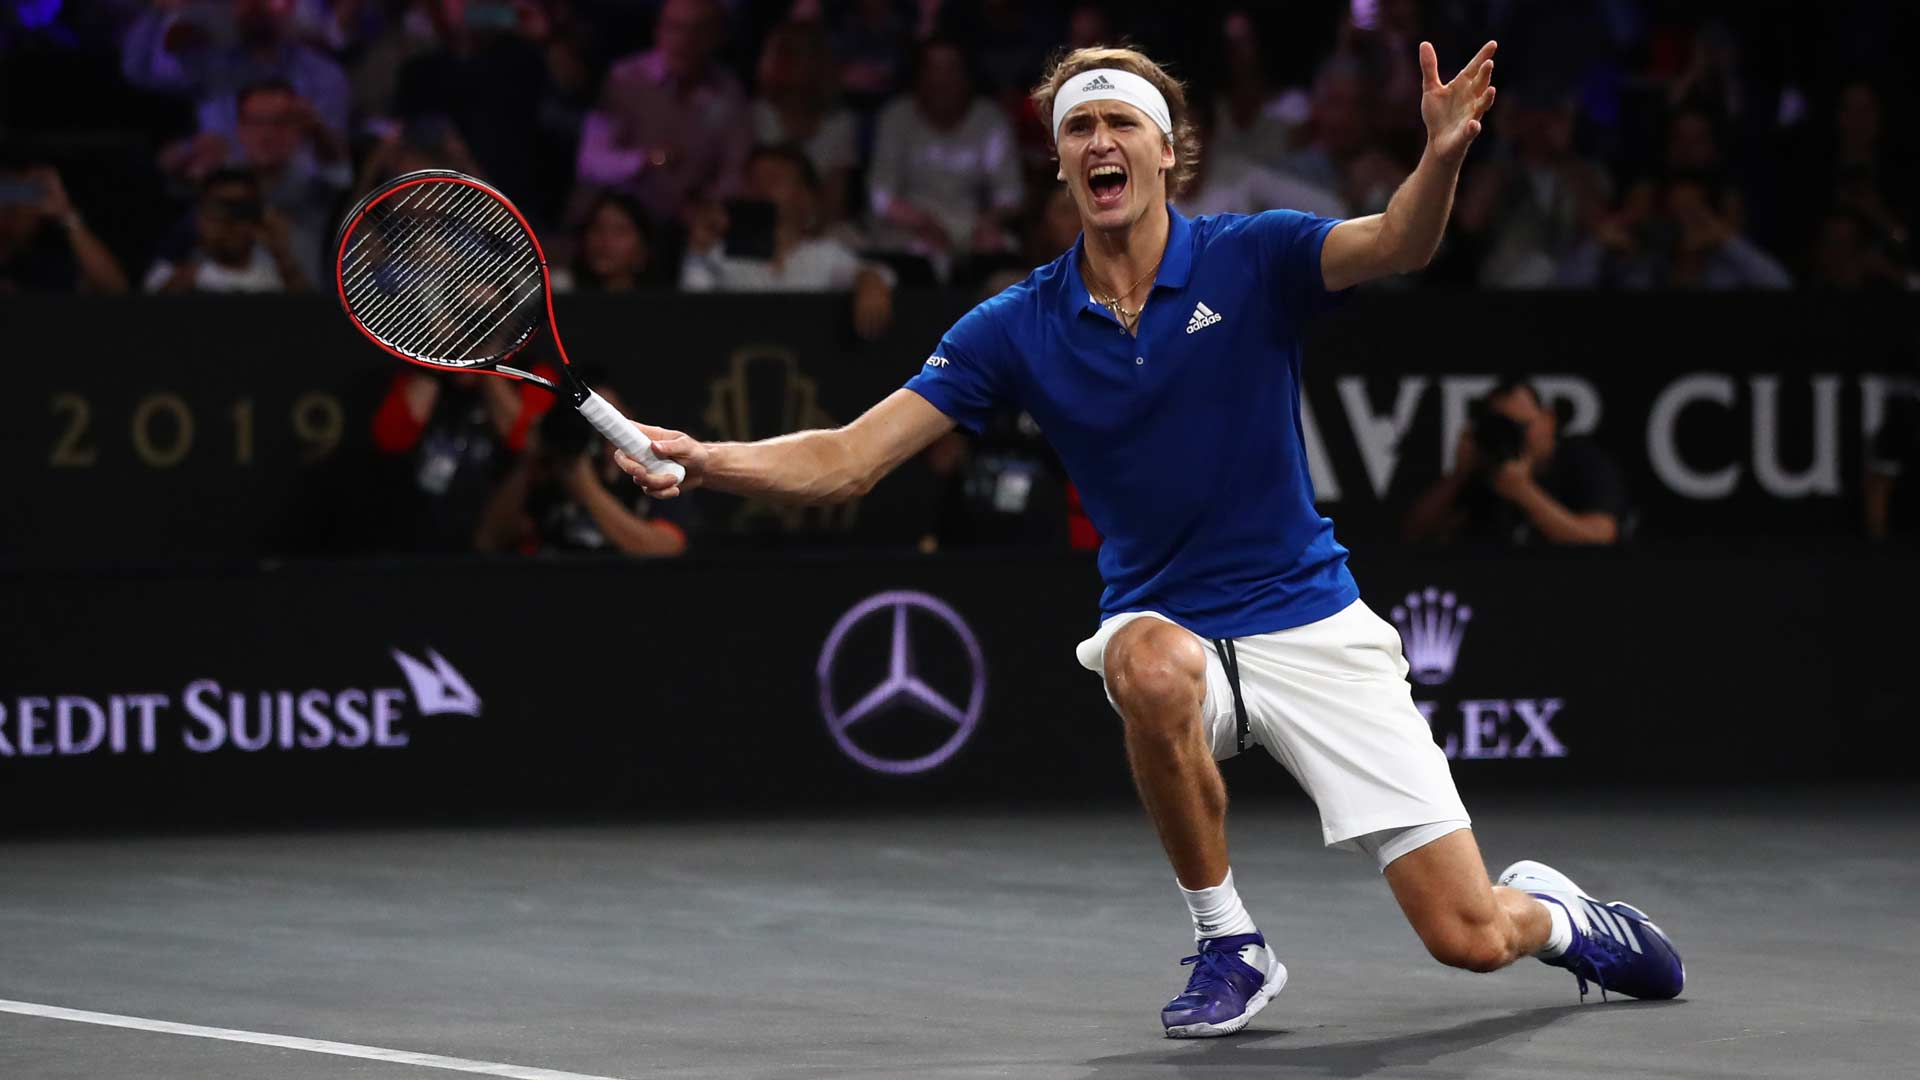 <a href='/en/players/alexander-zverev/z355/overview'>Alexander Zverev</a> defeats <a href='/en/players/milos-raonic/r975/overview'>Milos Raonic</a> to win the <a href='/en/tournaments/laver-cup/9210/overview'>Laver Cup</a>